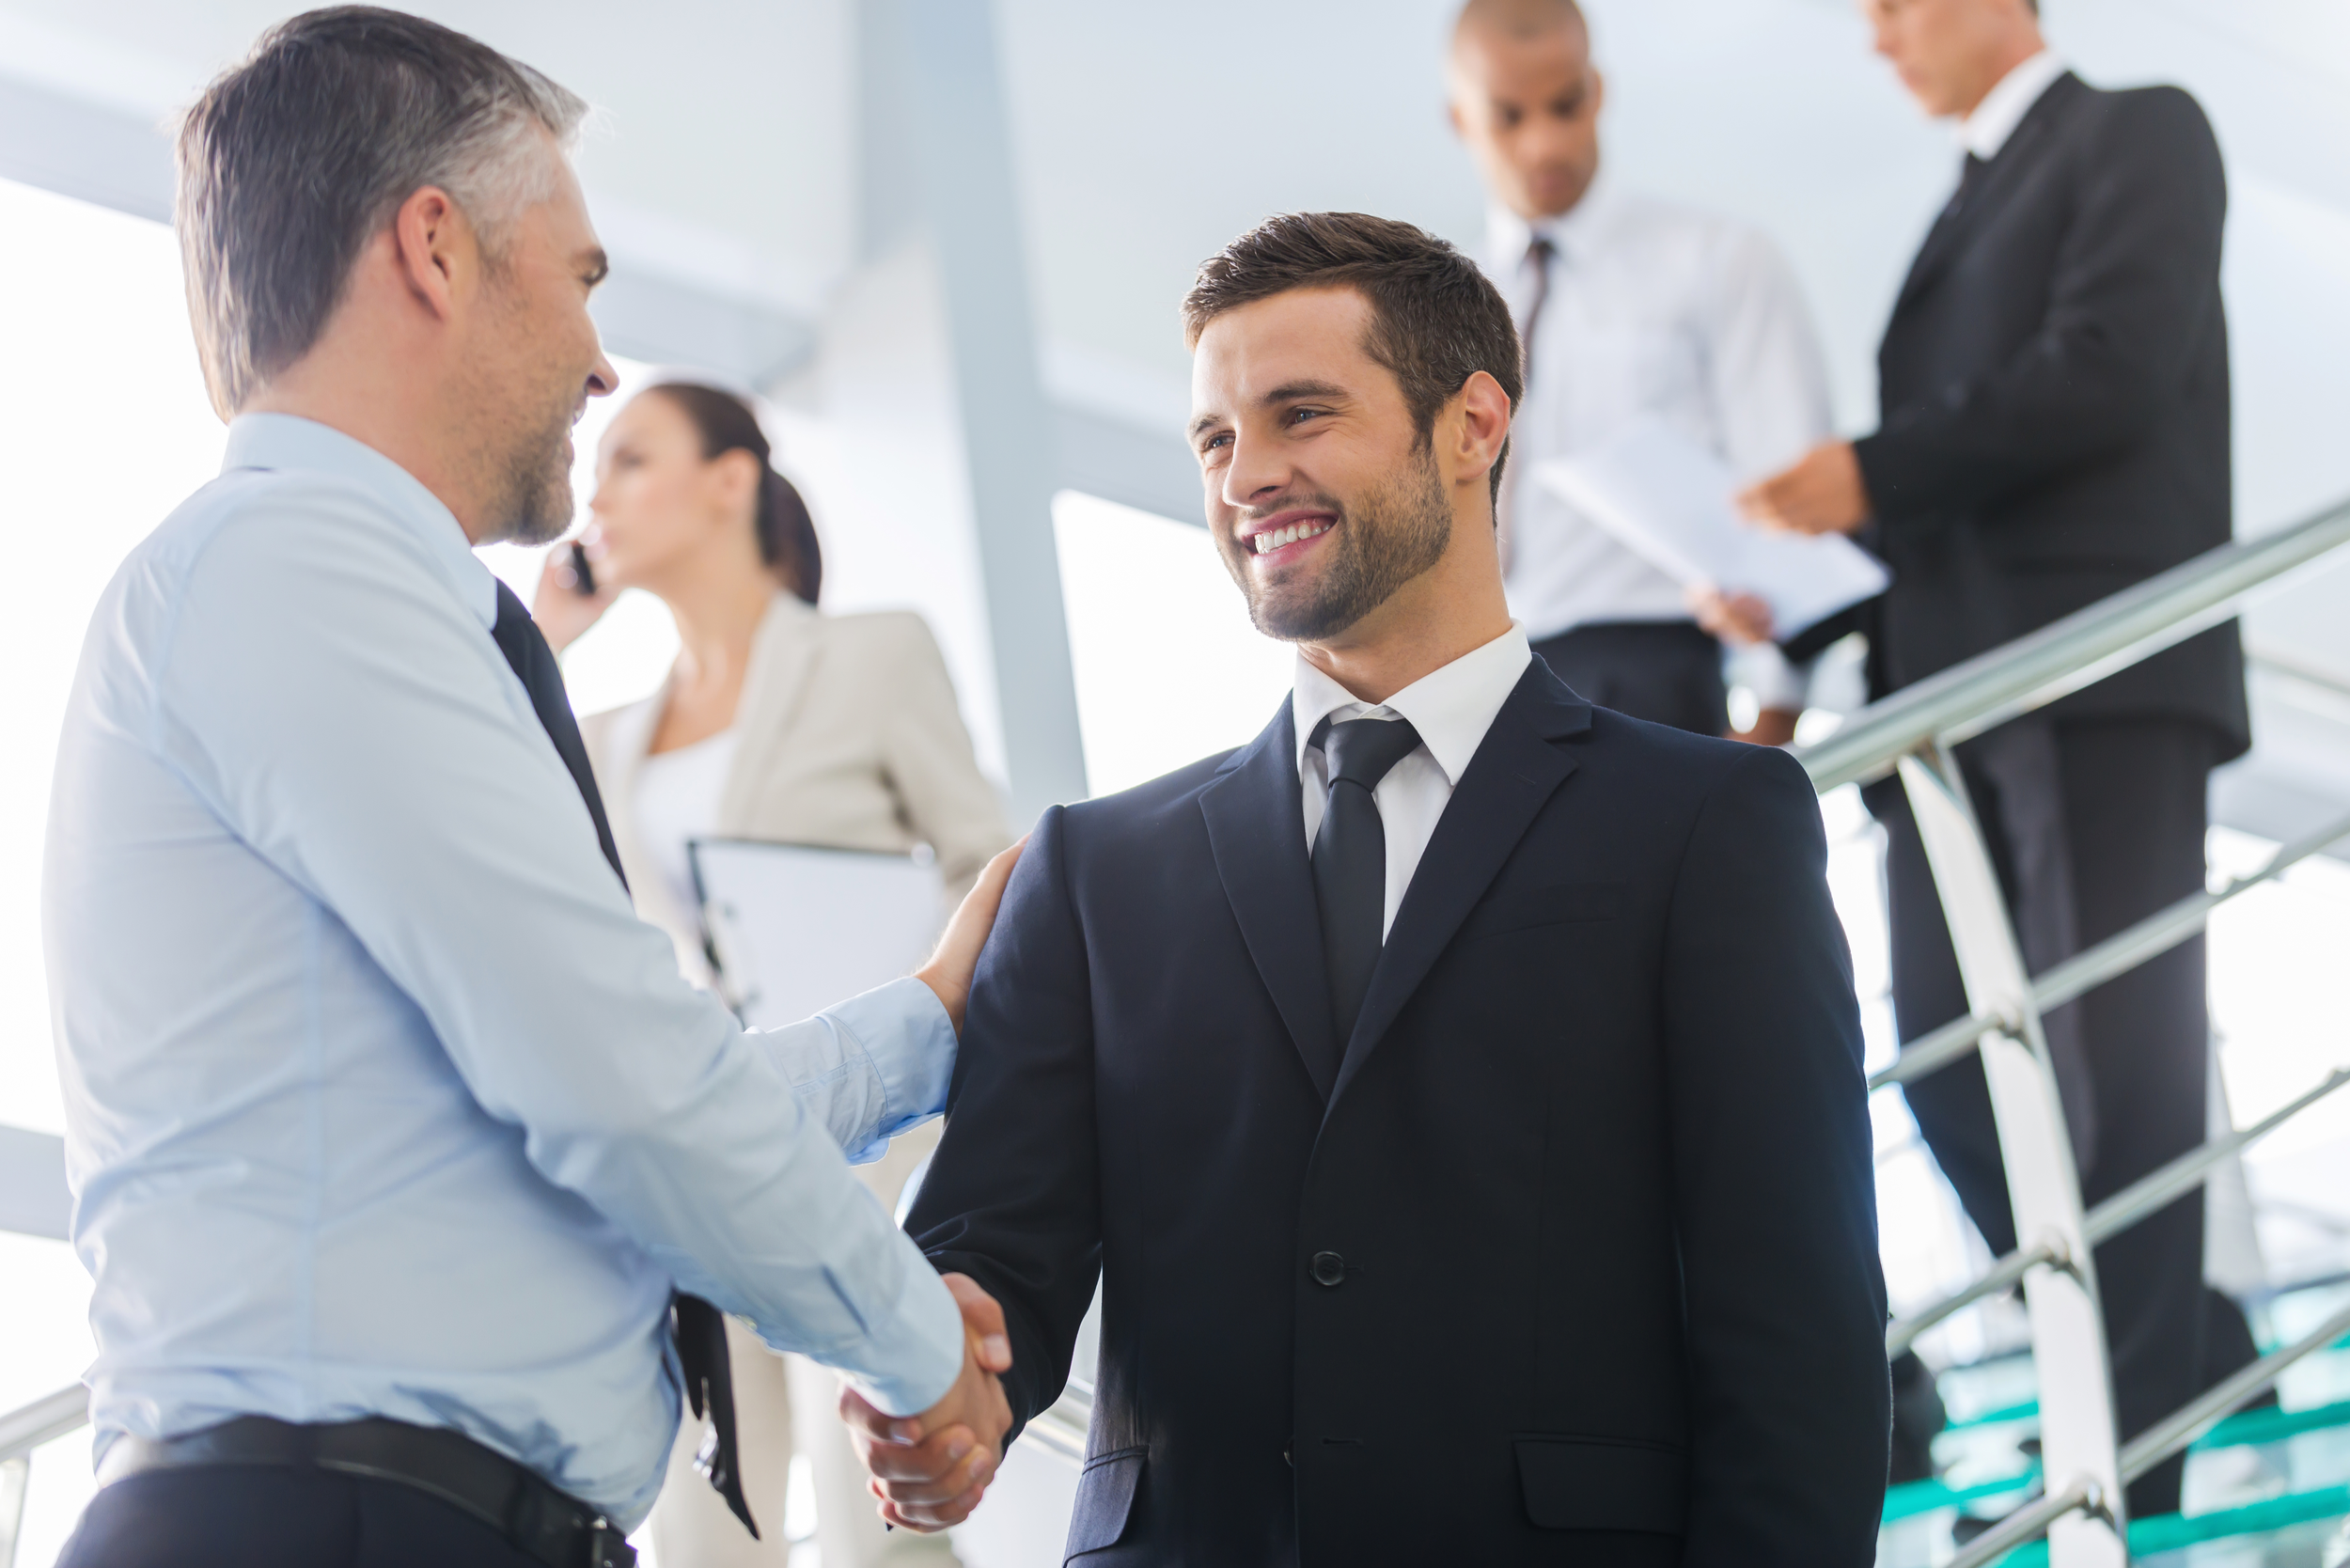 Sales rep and prospect conversation at trade show